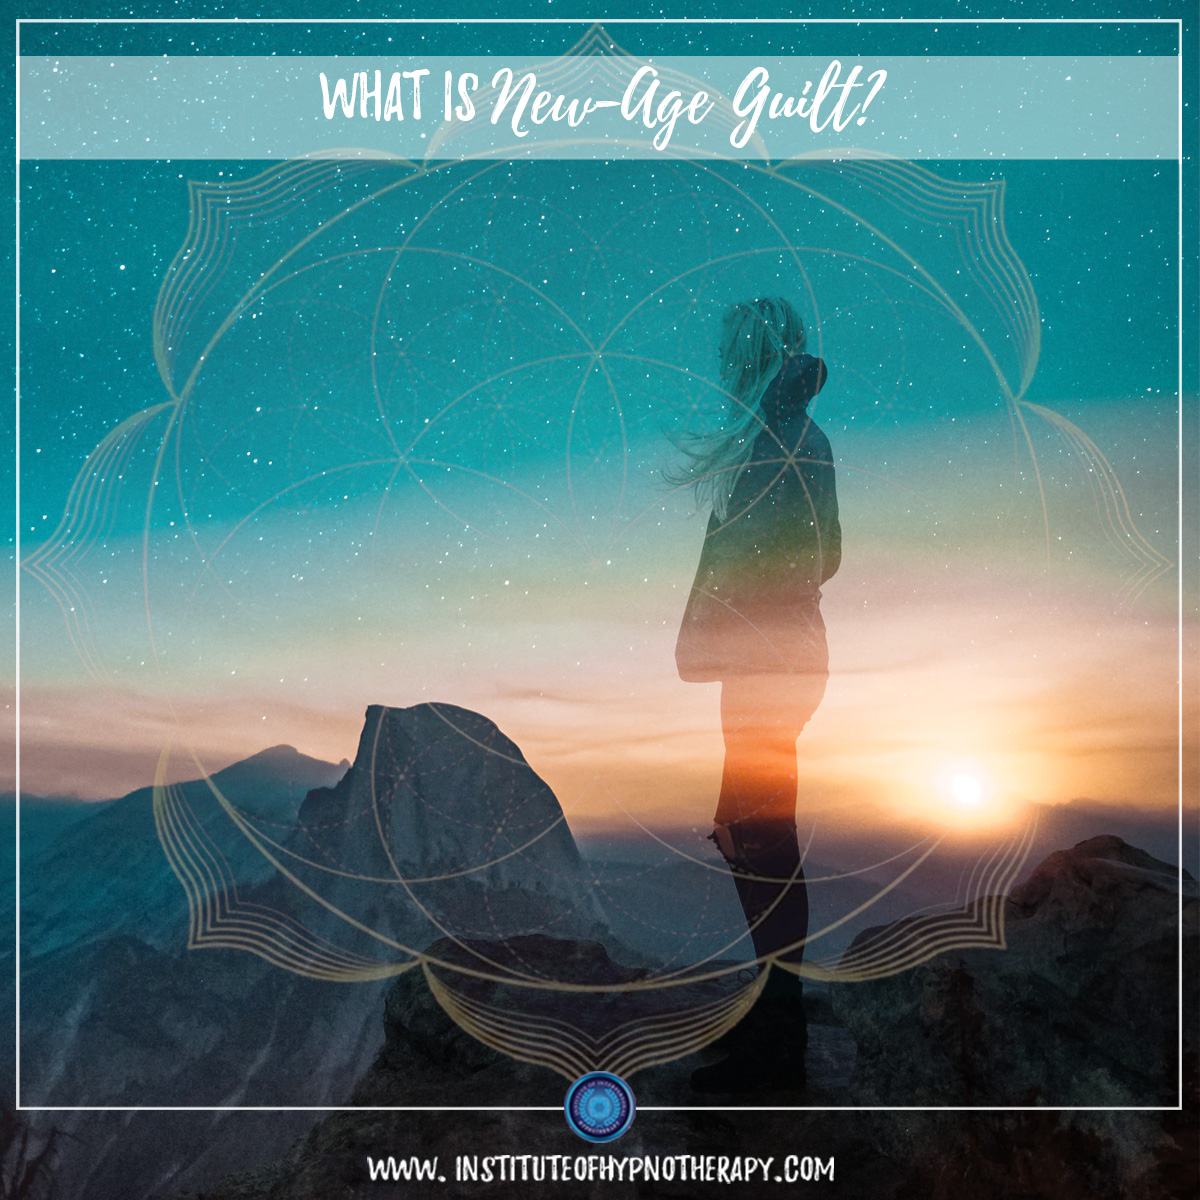 What is New-Age Guilt?